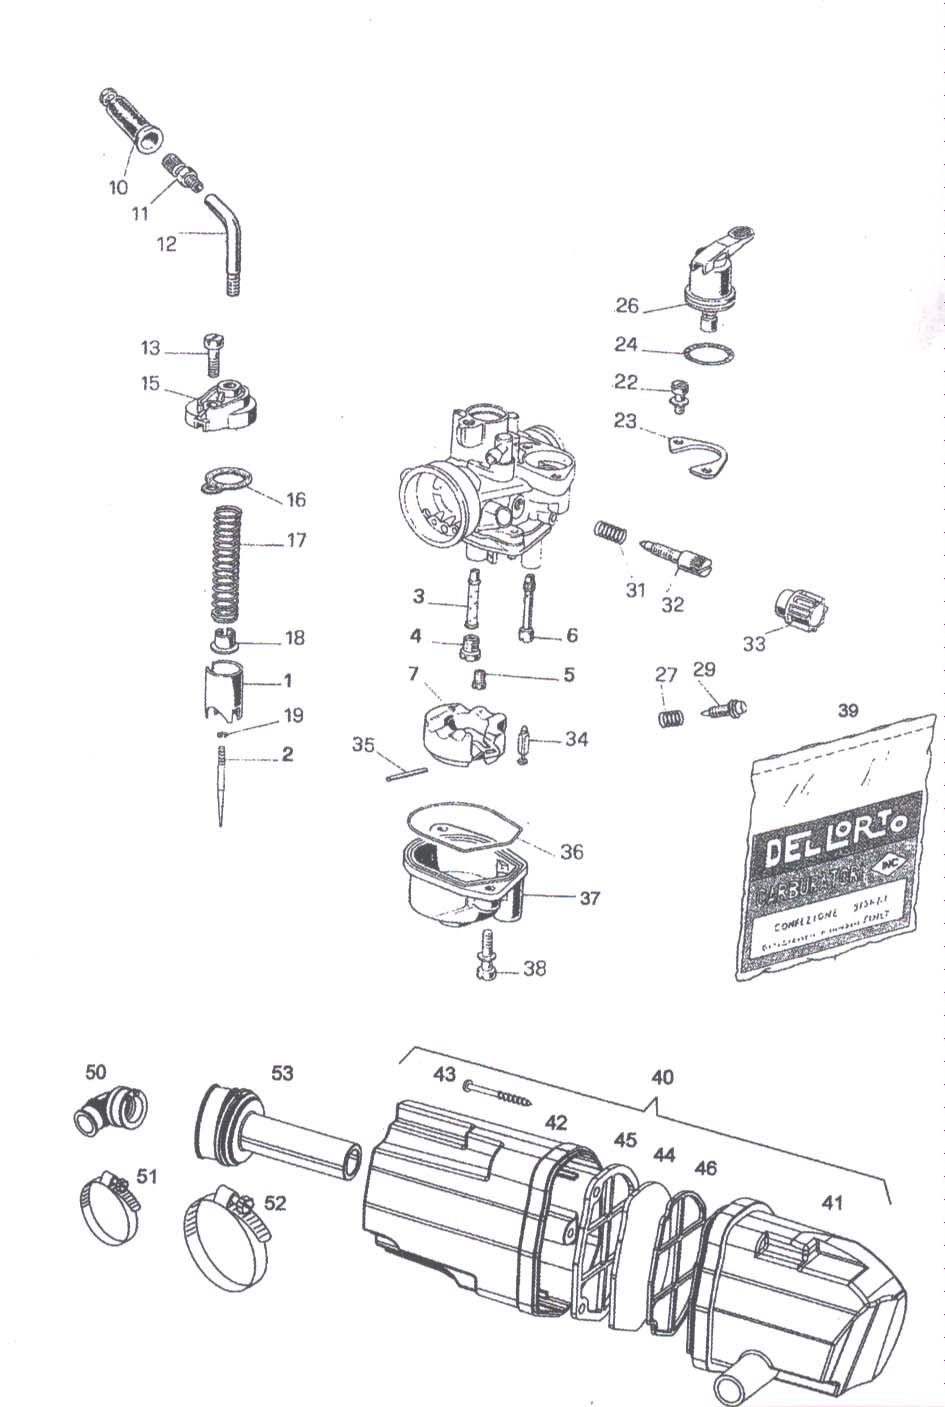 Tomos Parts Diagram Wiring Diagrams Moped A35 Circuit Maker Manual